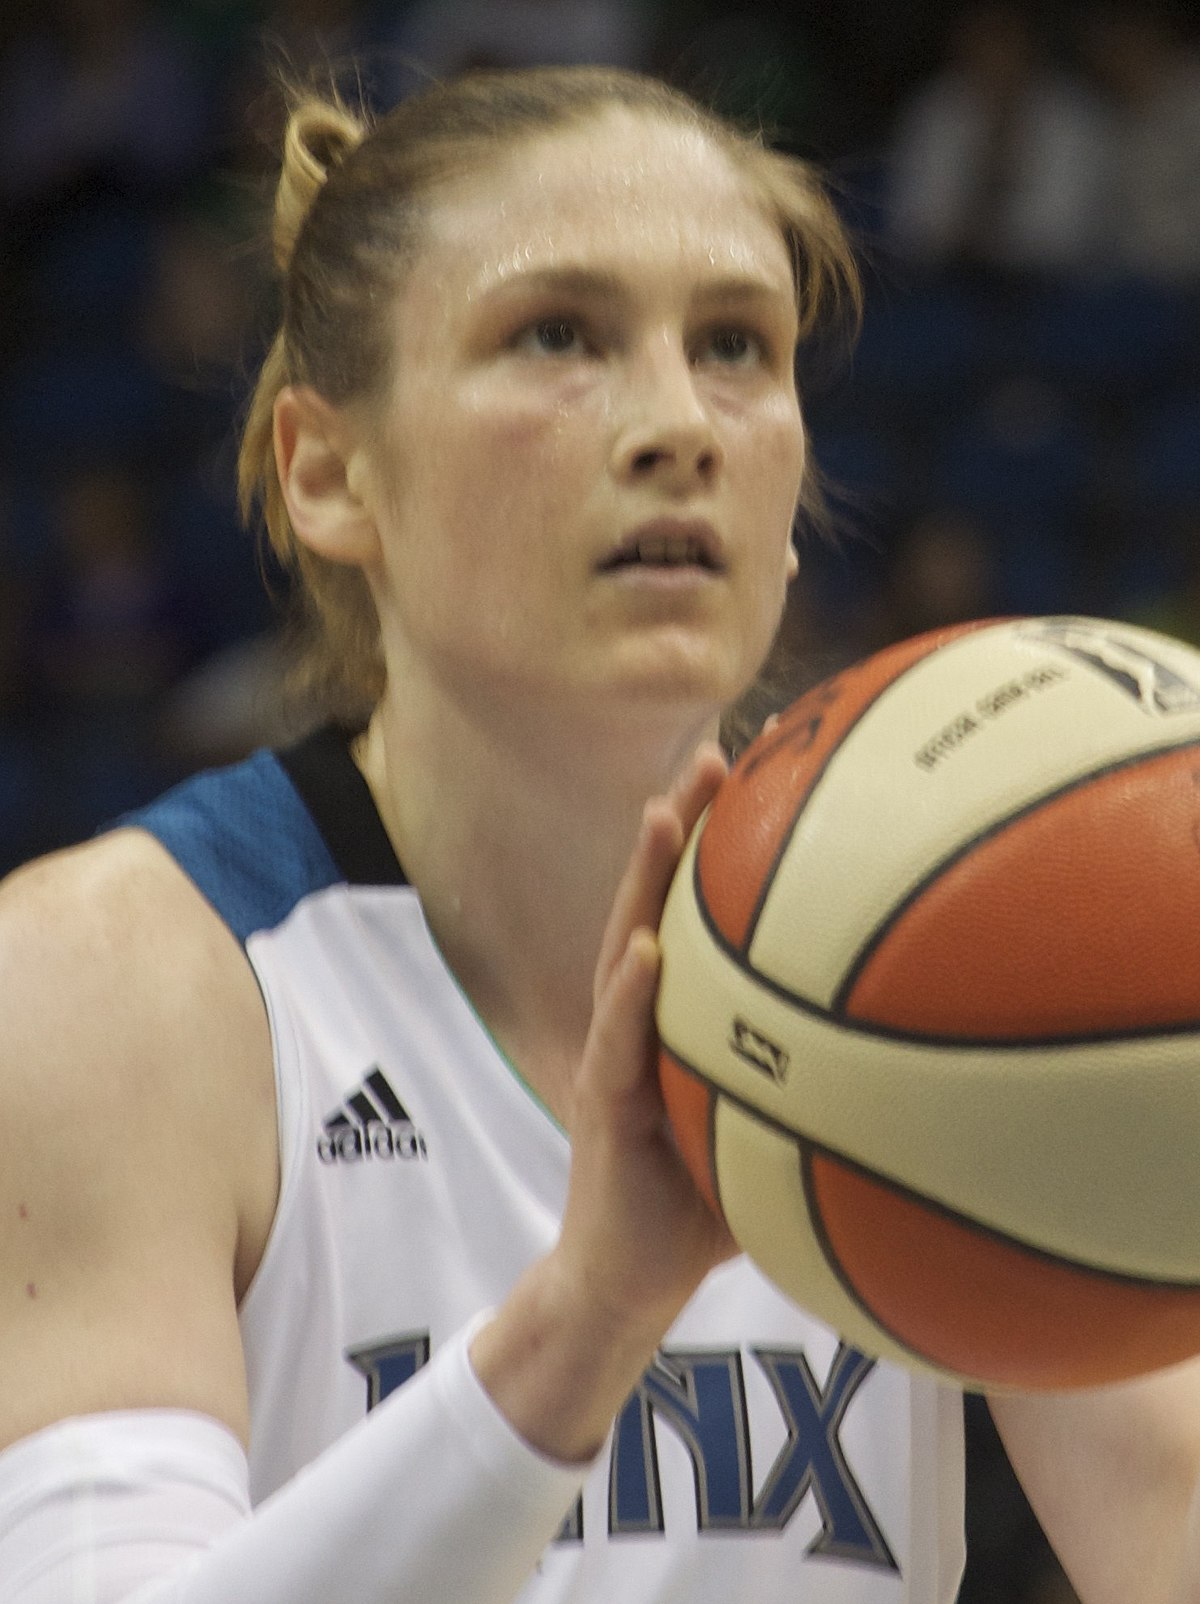 how tall is lindsay whalen